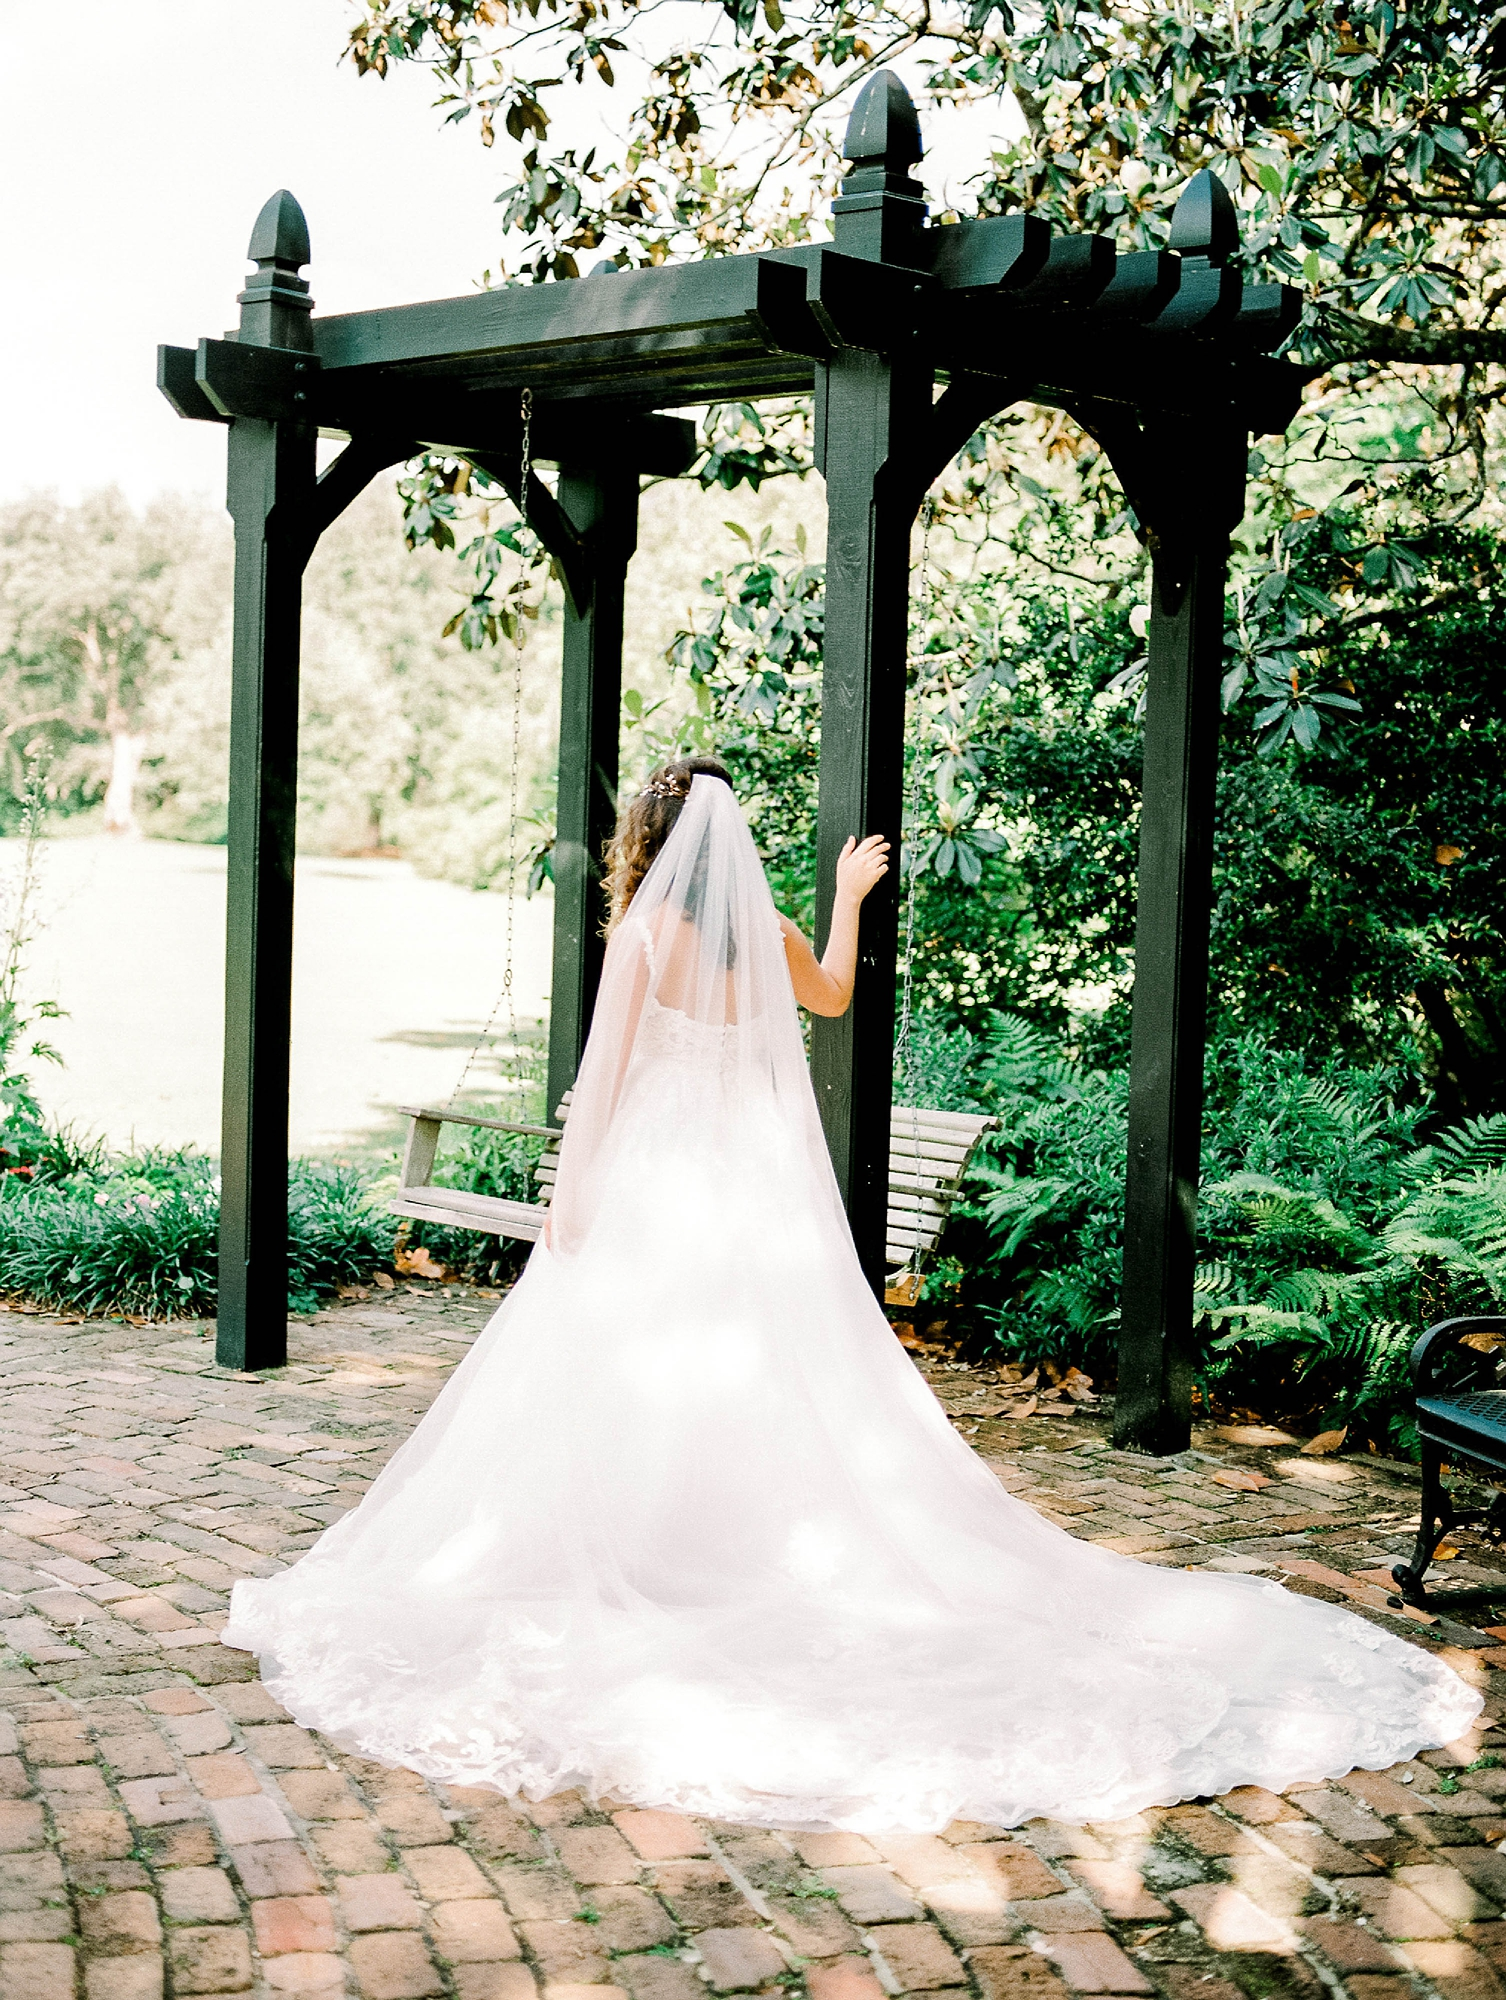 Bride,Groom,Reception,best man,bridal boudoir,bridal session,bridals,brides dress,church,couples,engagement,engagement ring,engagements,father of the bride,film,first look,flower girl,fuji,getting married,groom. wedding cake,honeymoon,i do,just married,maid of hour,mastin,mississippi wedding photographer,mother of the groom,photographer,ring,ring bearer,the knot,wedding,wedding band,wedding dress,wedding photographer,wedding photography,wedding venue,weddings,